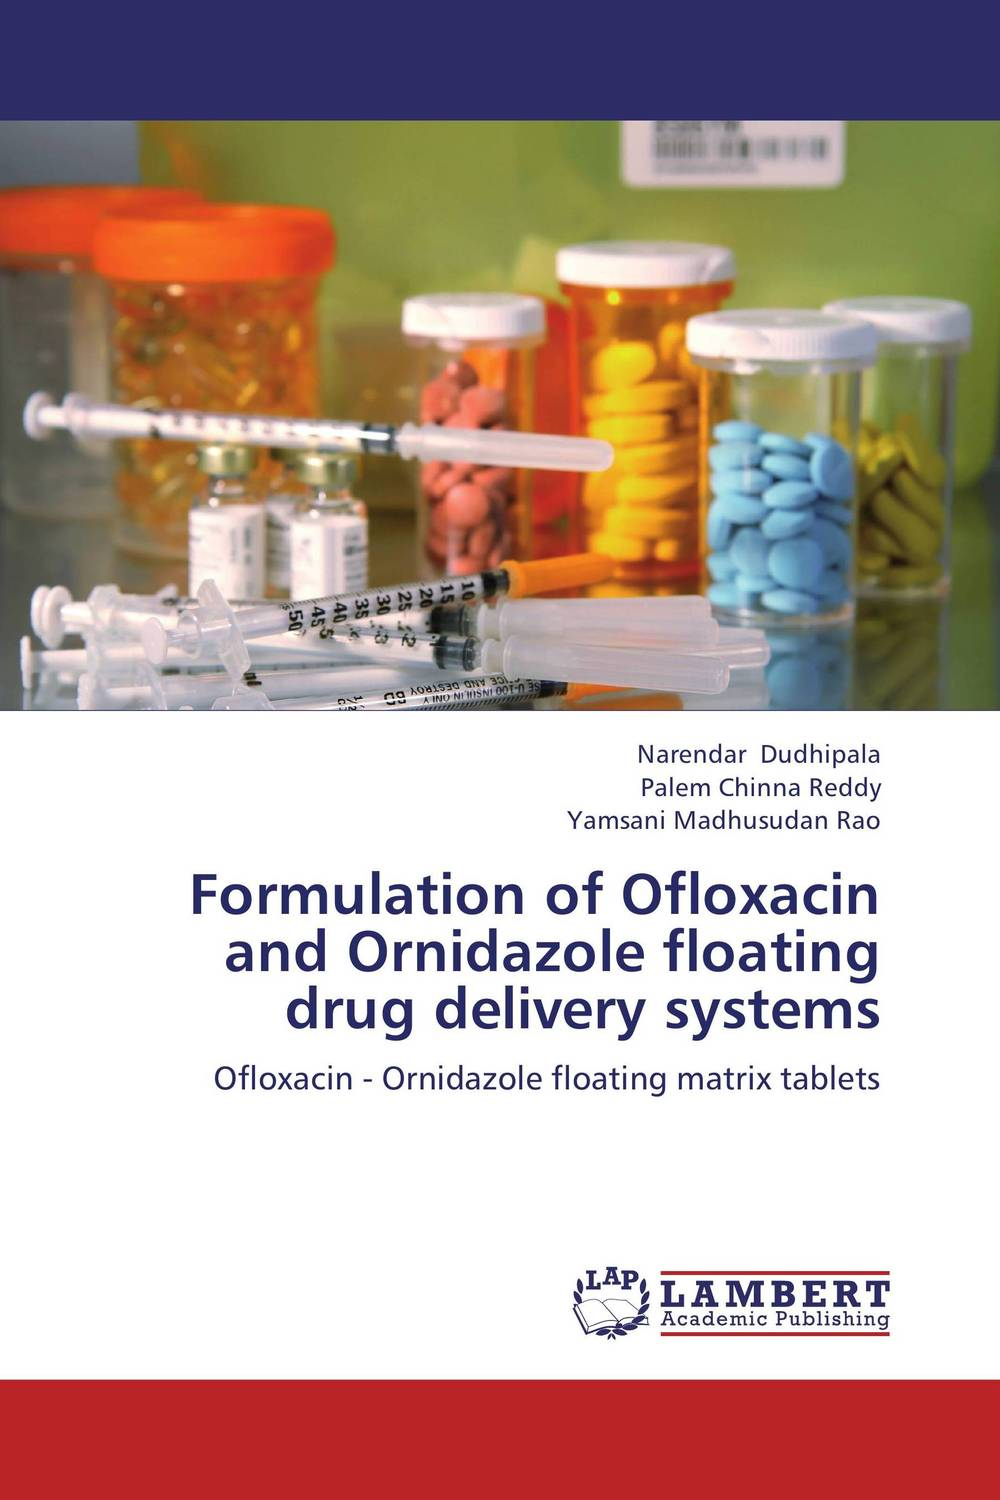 Formulation of Ofloxacin and Ornidazole floating drug delivery systems attia afzal mahmood ahmad and muhammad sarfraz in vitro in vivo correlation ivivc for poorly soluble drugs